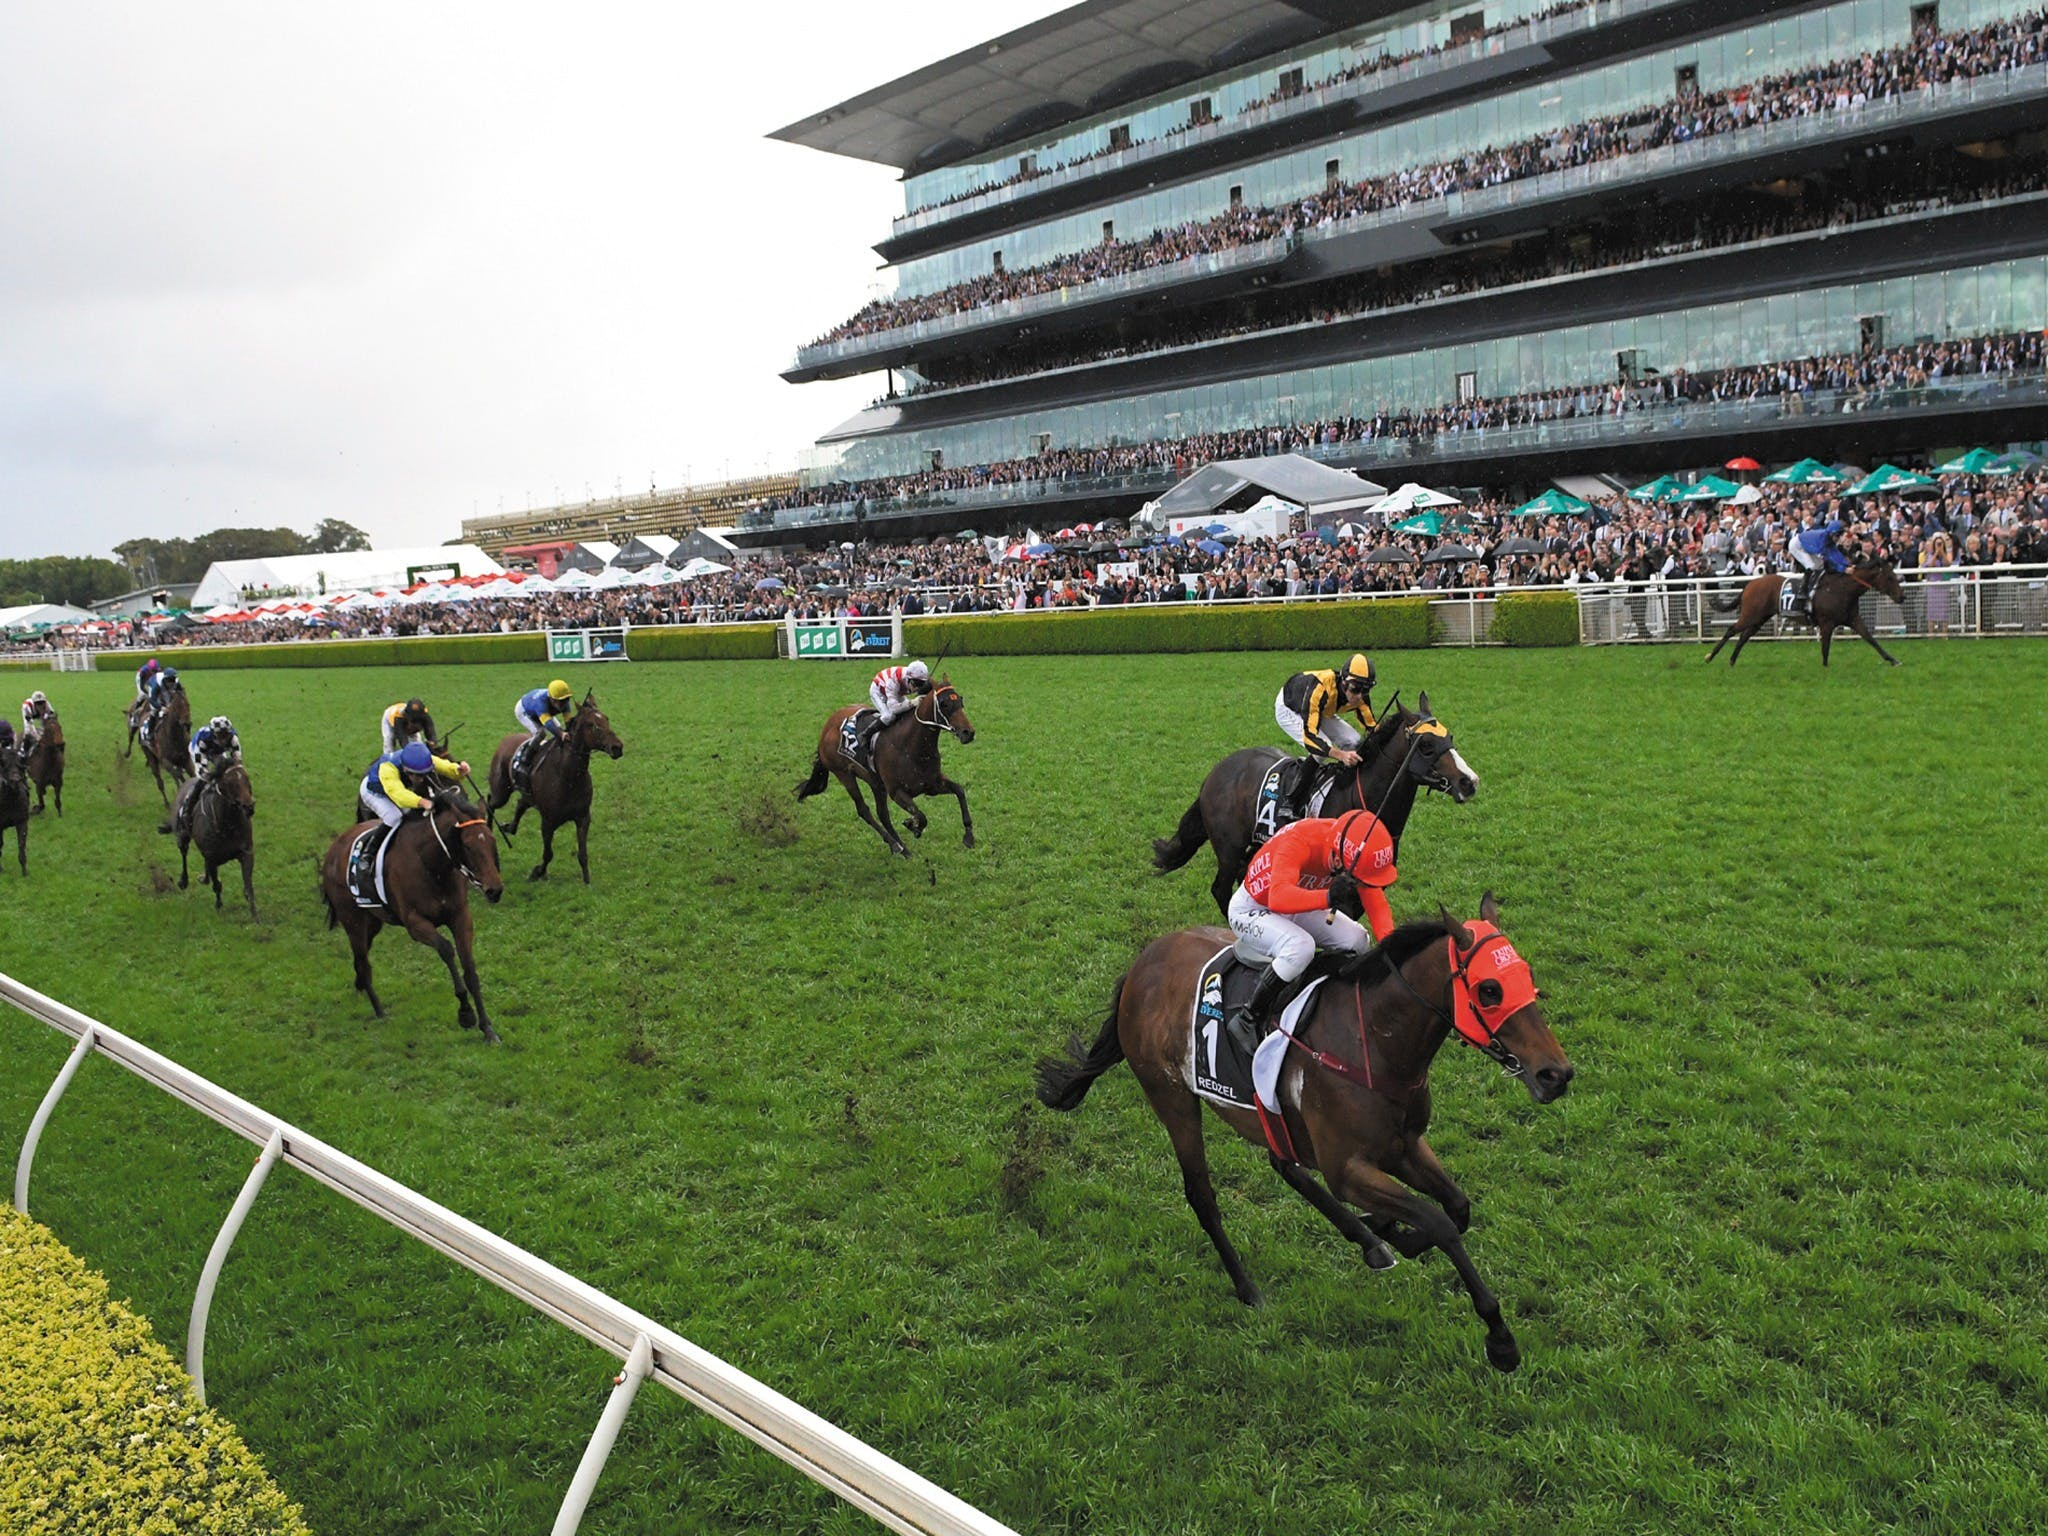 The TAB Everest The Worlds Richest Race On Turf - Pubs Perth